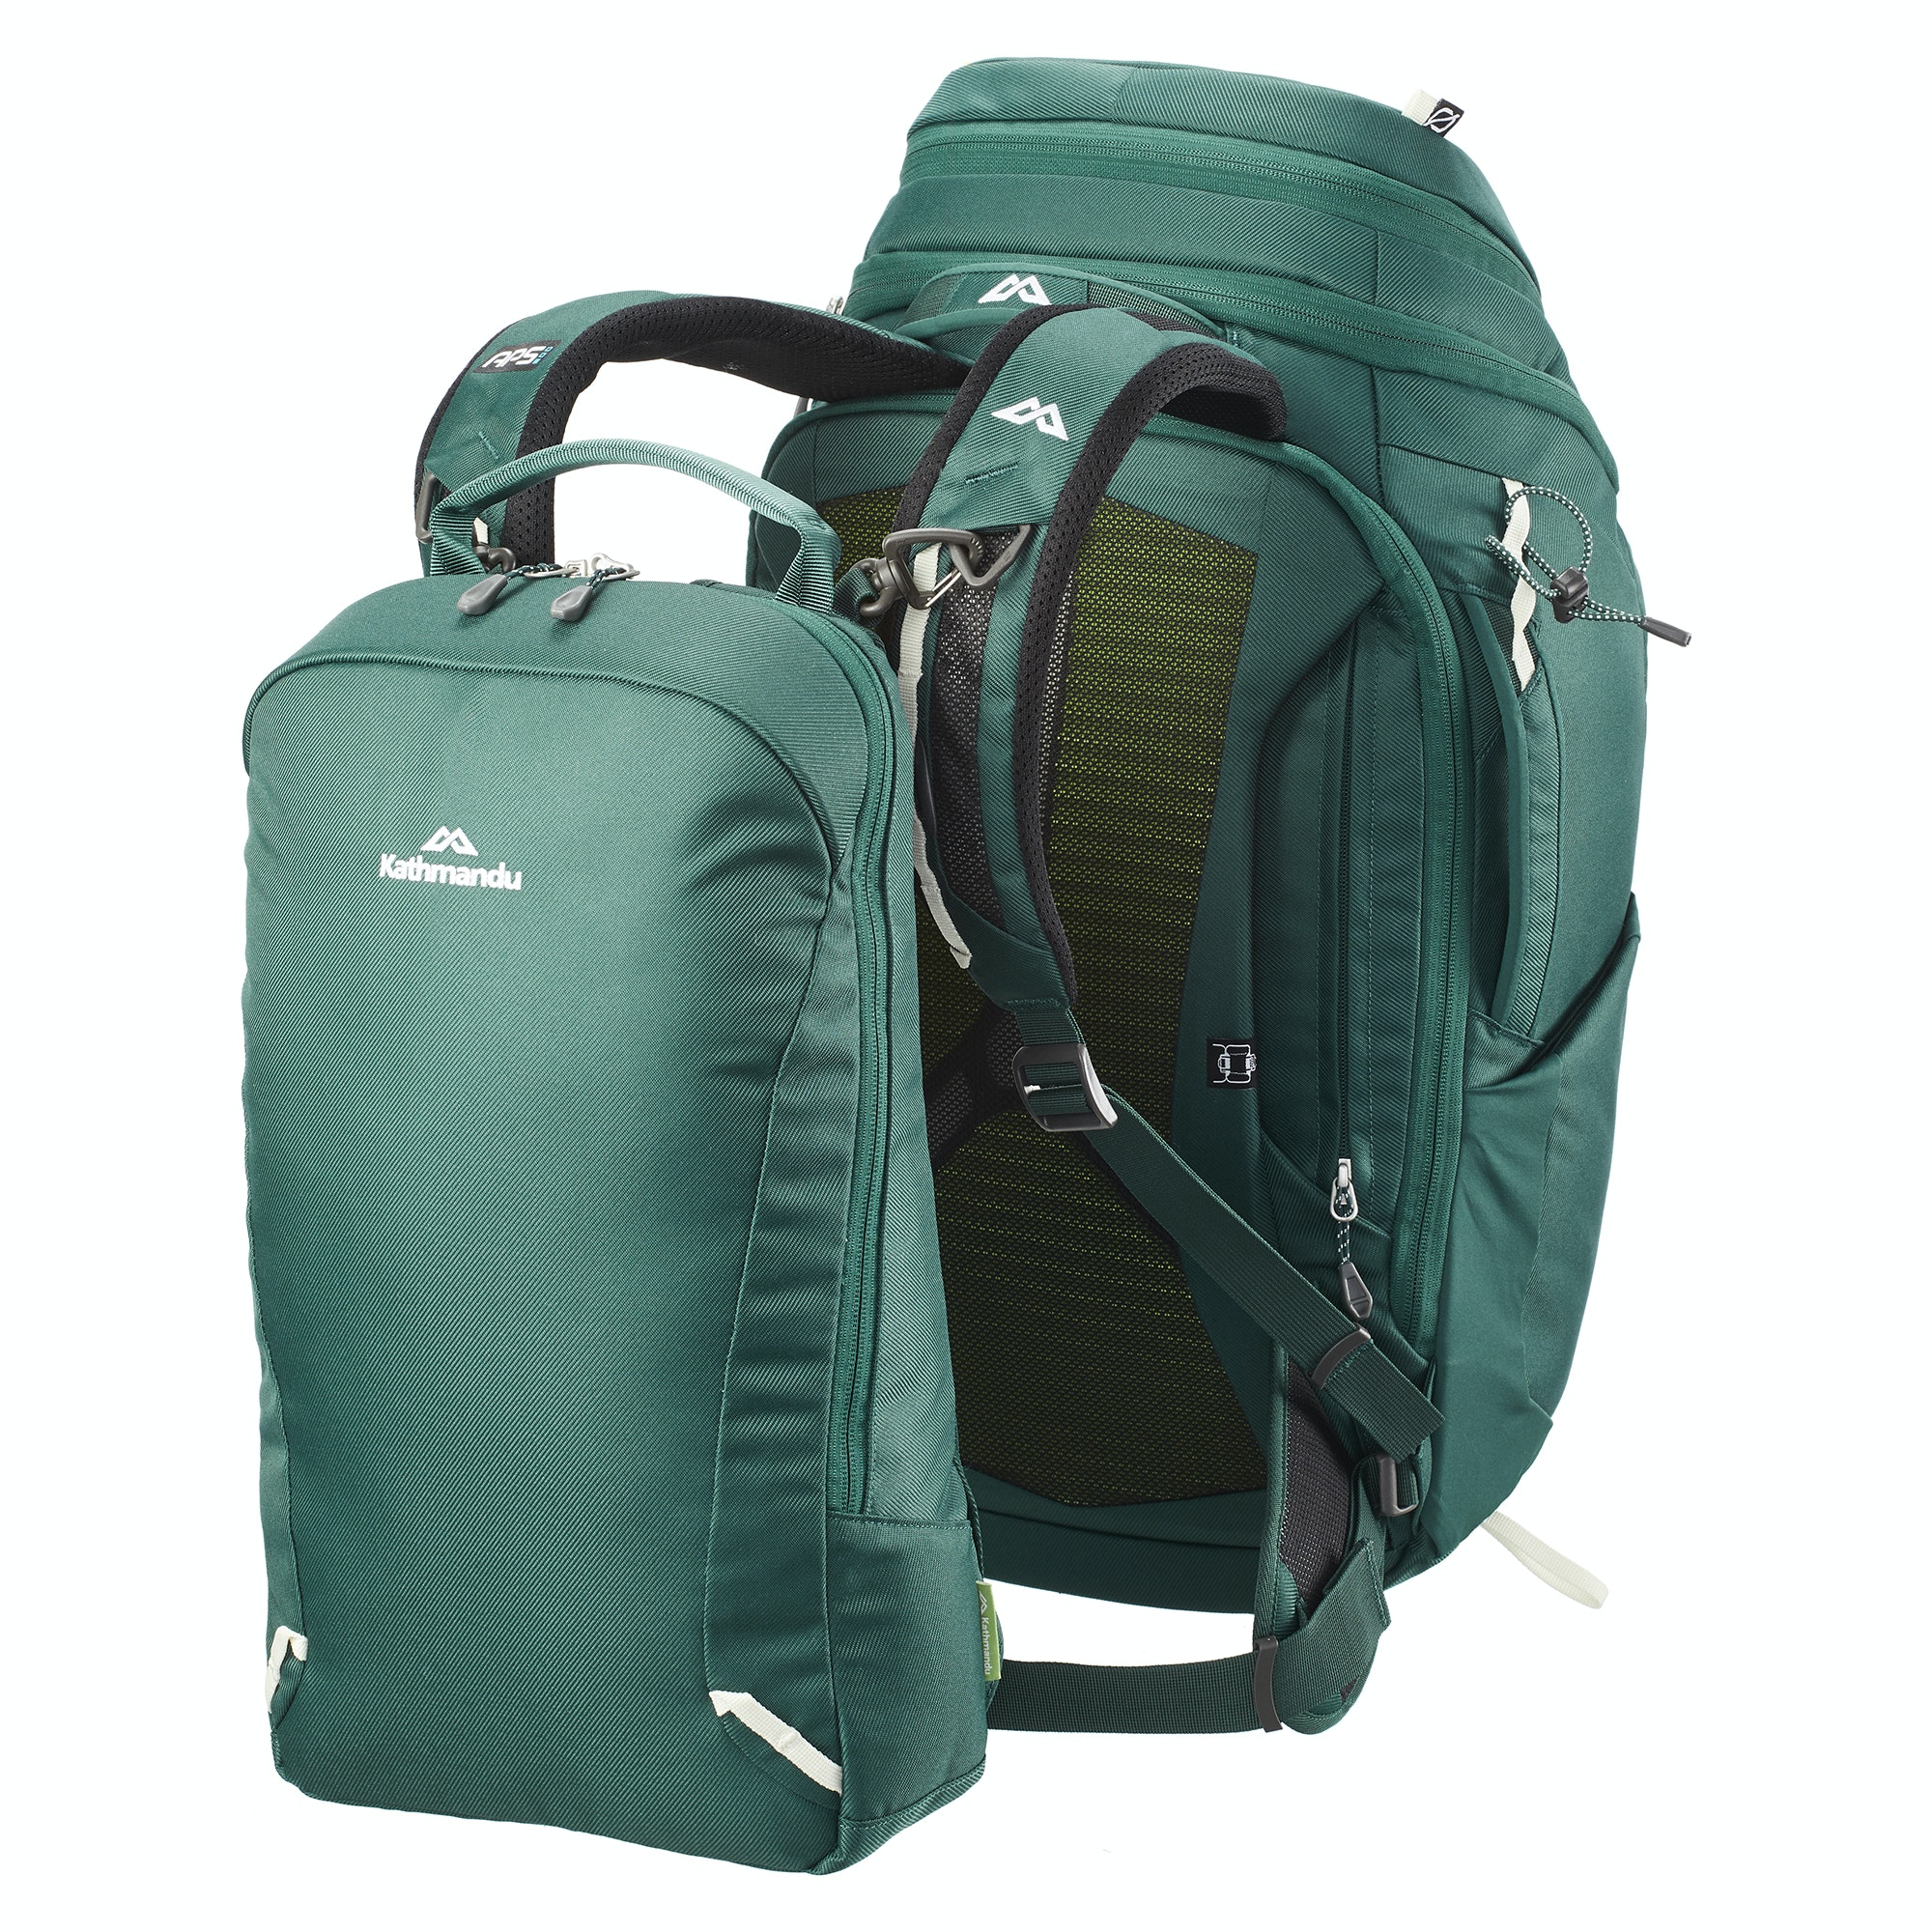 NEW-Kathmandu-Transfer-28L-Commuter-Bag-Laptop-Backpack-Rucksack-Travel-Pack-v3 thumbnail 20